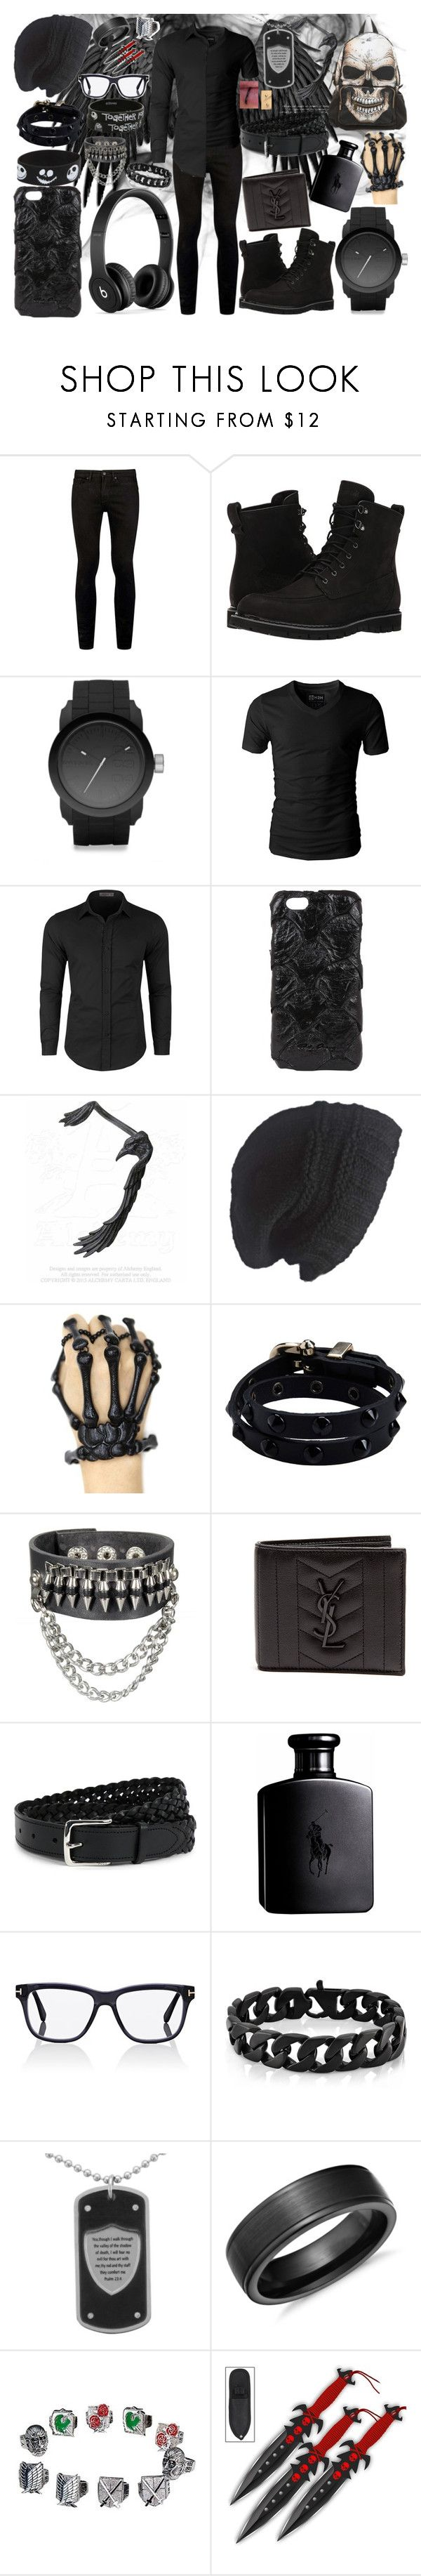 """""""Black Out Mens outfit"""" by vampirekitty34 ❤ liked on Polyvore featuring Topman, Timberland, Diesel, Doublju, Rick Owens, Laundromat, Beats by Dr. Dre, LIU•JO, Disney and Yves Saint Laurent"""